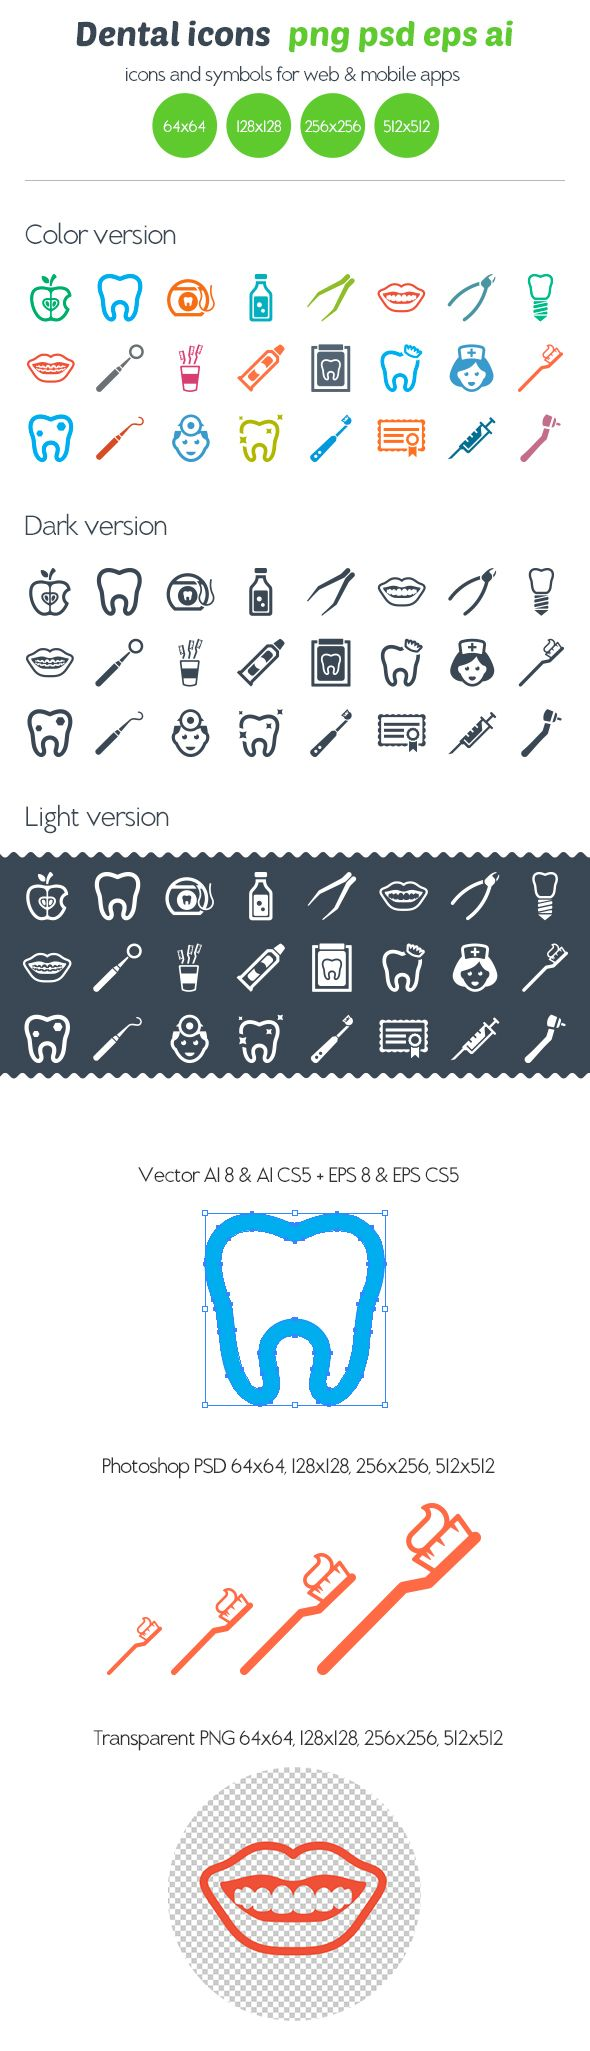 Dental icons by Ottoson , via Behance